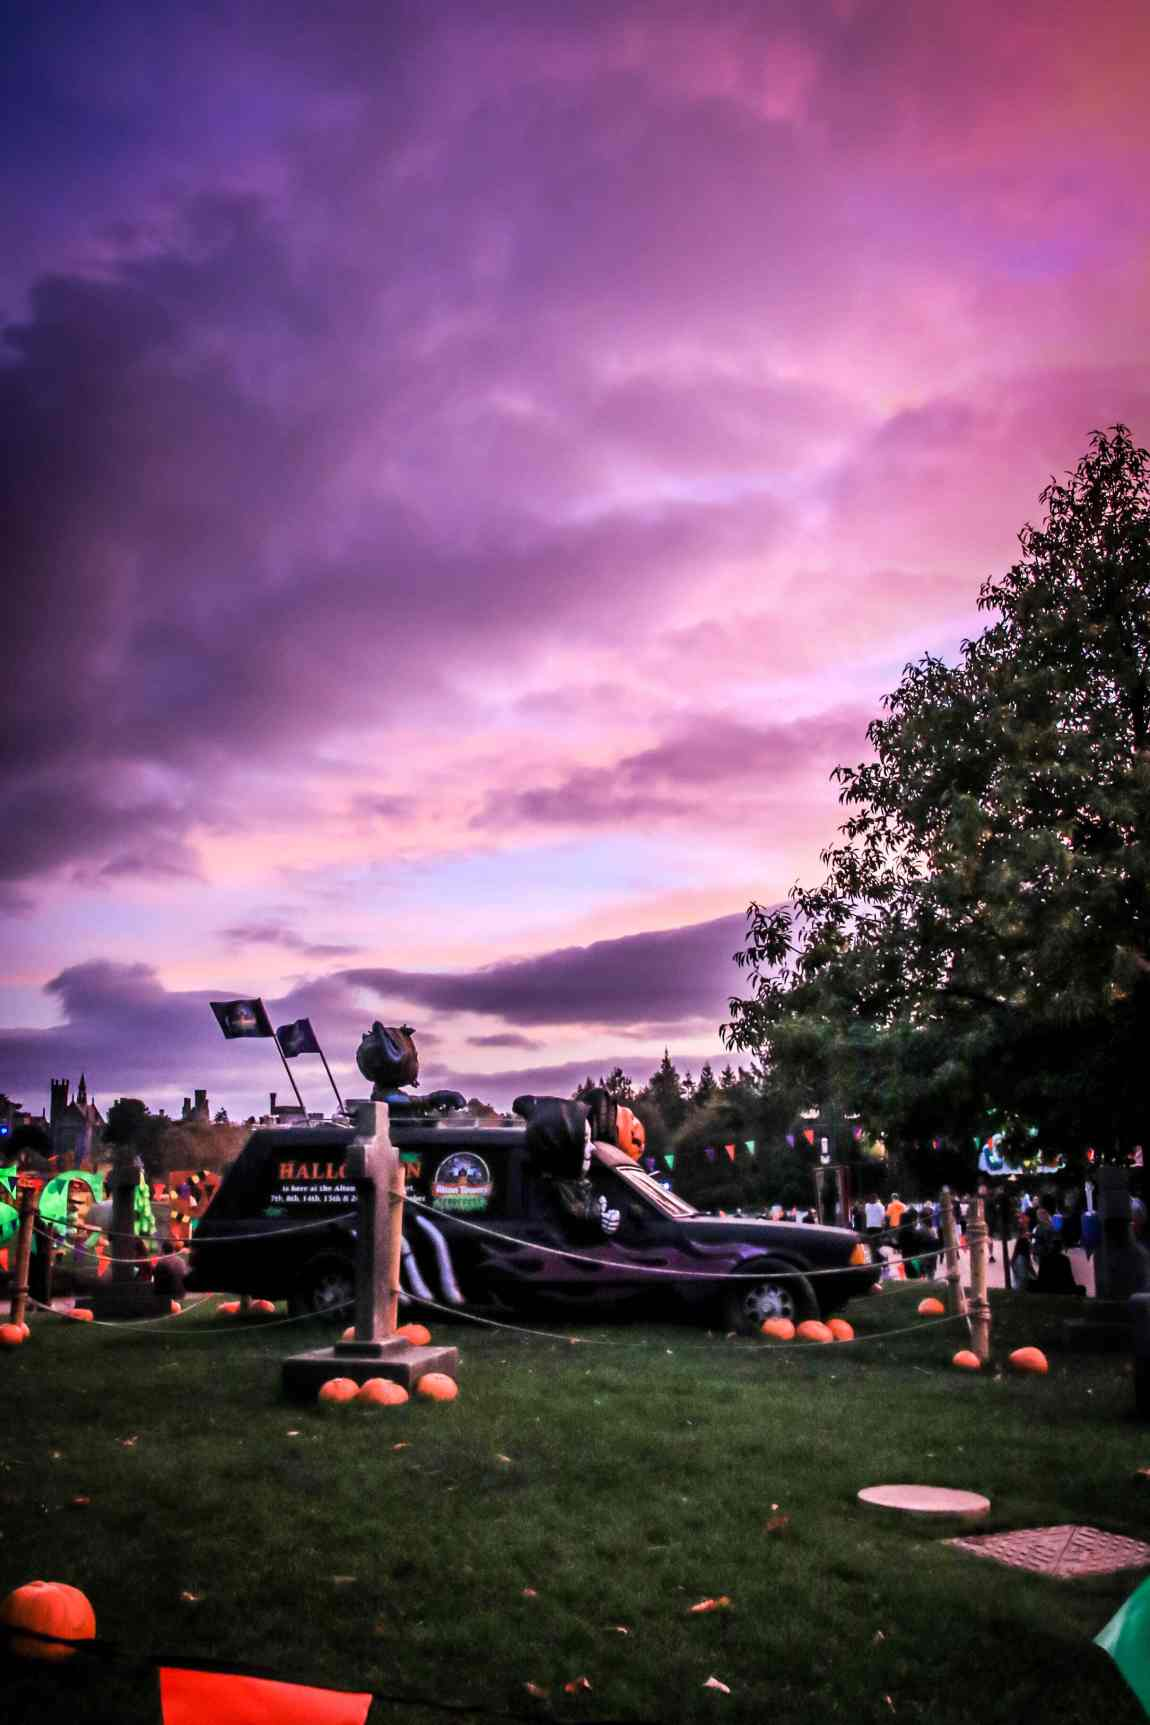 Spooky skies during the Scarefest event at Alton Towers